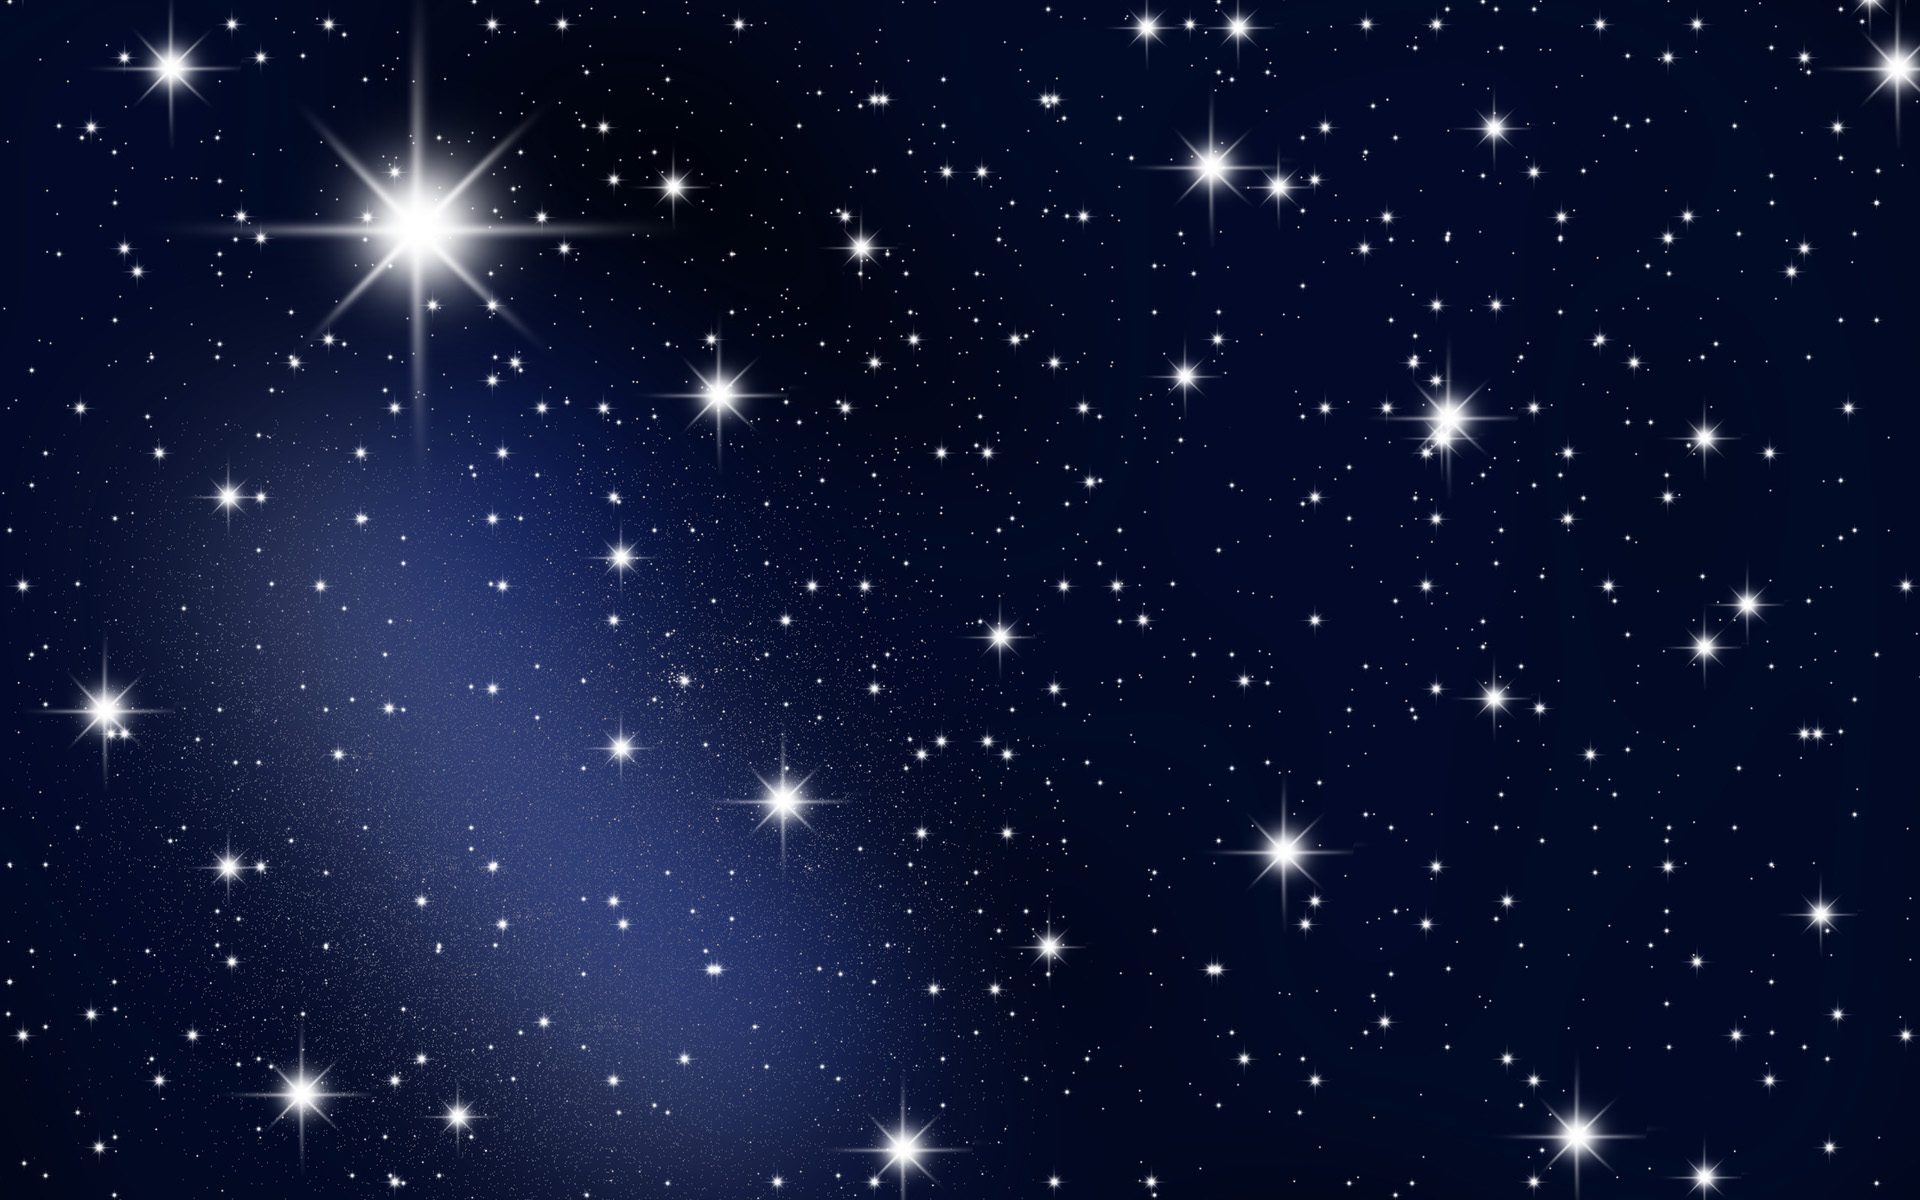 Stars HD Wallpaper Free Download